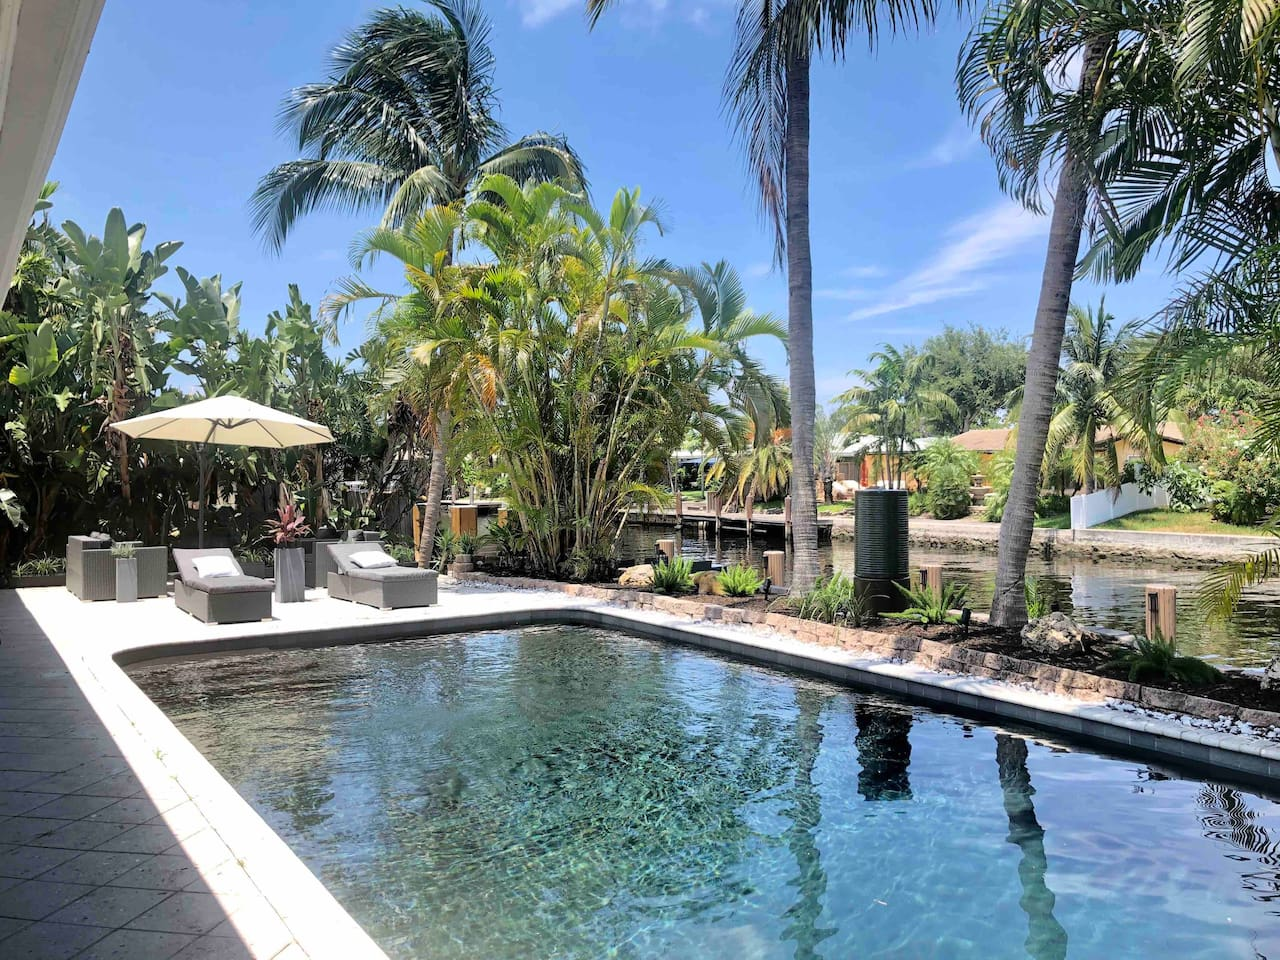 While the sparkling saltwater lagoon pool is a favorite, there are a number of intimate areas of the waterfront property for sunbathers and those who prefer the shade to explore at Wilton Palms